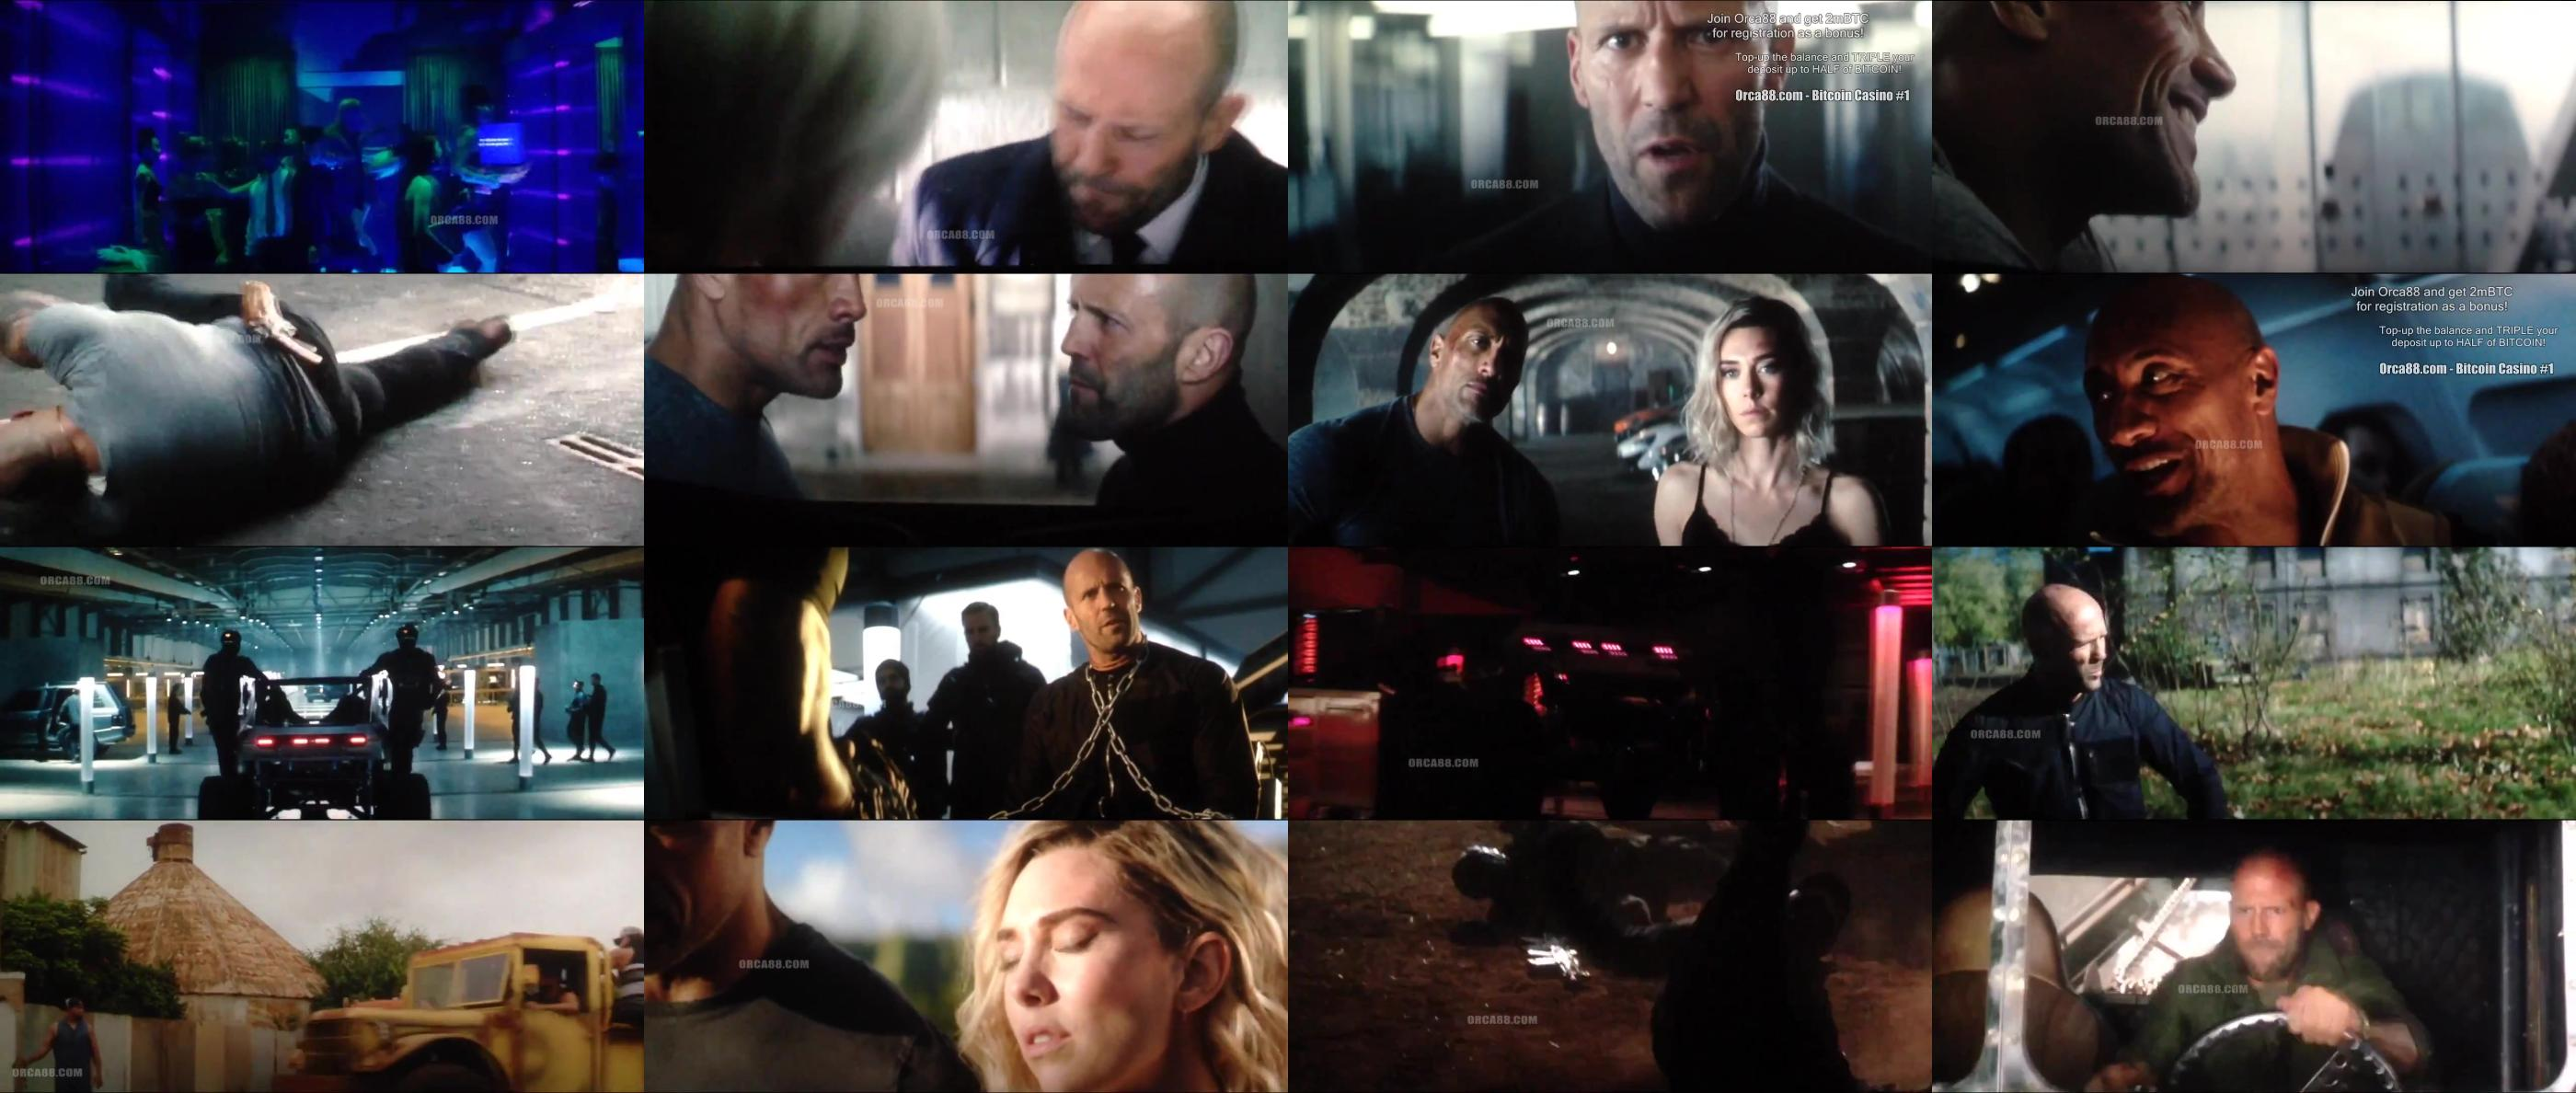 Fast and Furious Presents Hobbs and Shaw 2019 720p HDTS 900MB orca88 x264 BONSAI